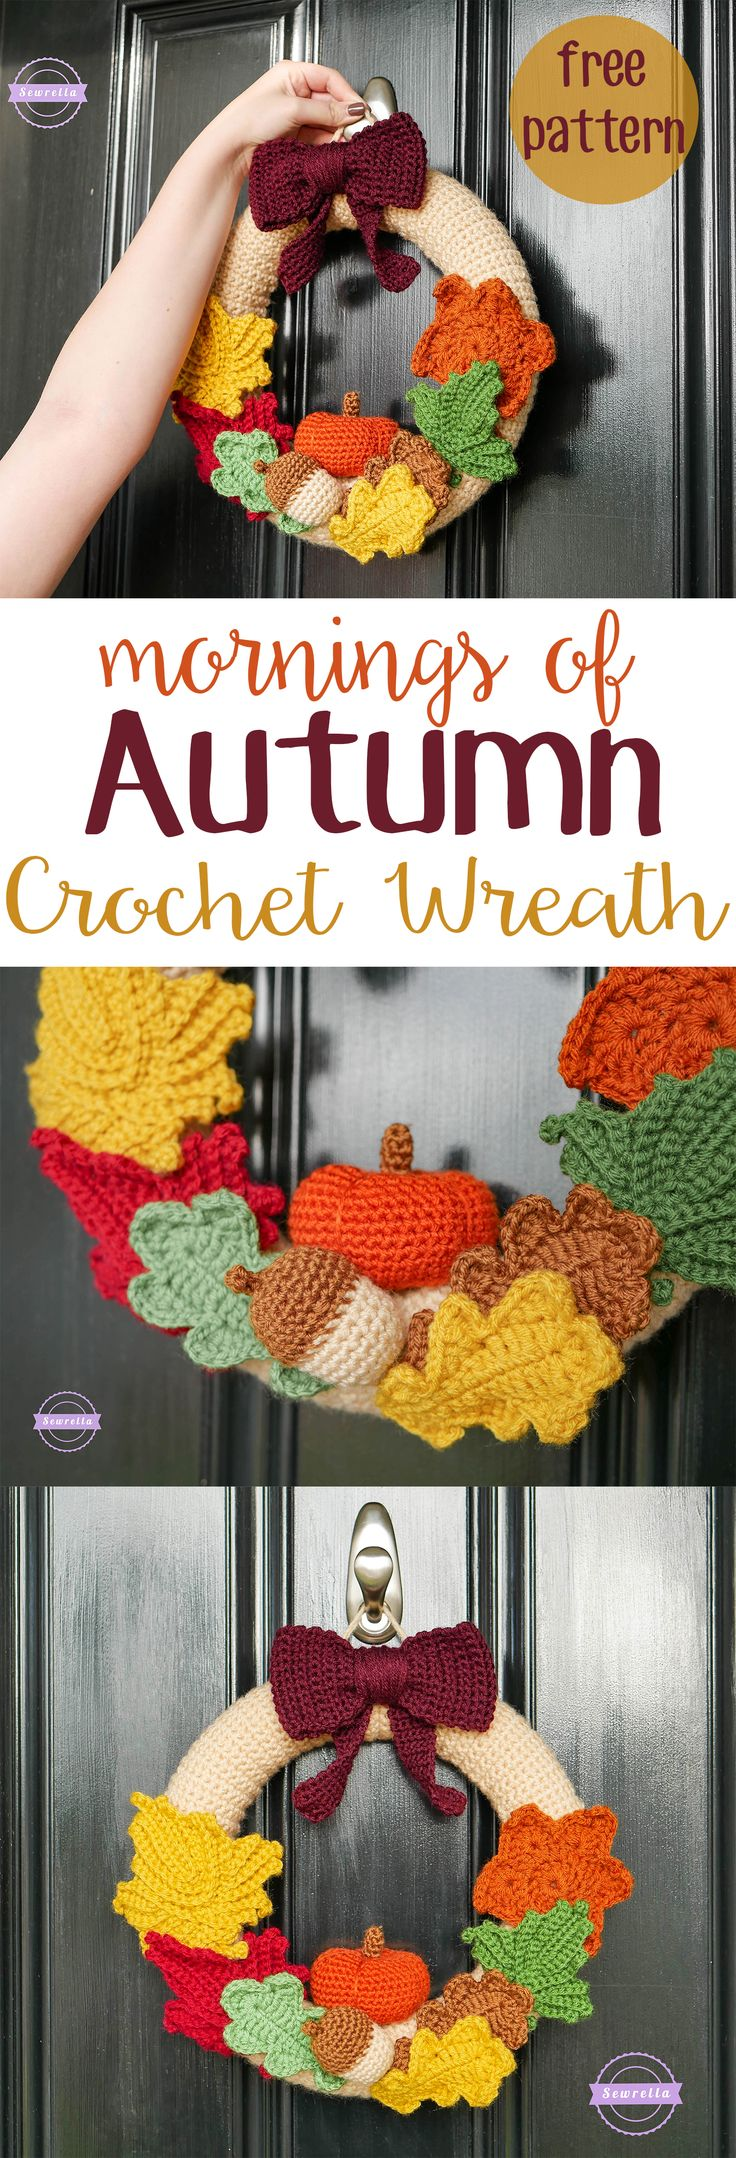 Mornings of Autumn Crochet Wreath | Free Pattern from Sewrella | Hang it with an Outdoor Command Brand Hook for ease & Style! #ad #CreateWithCommand